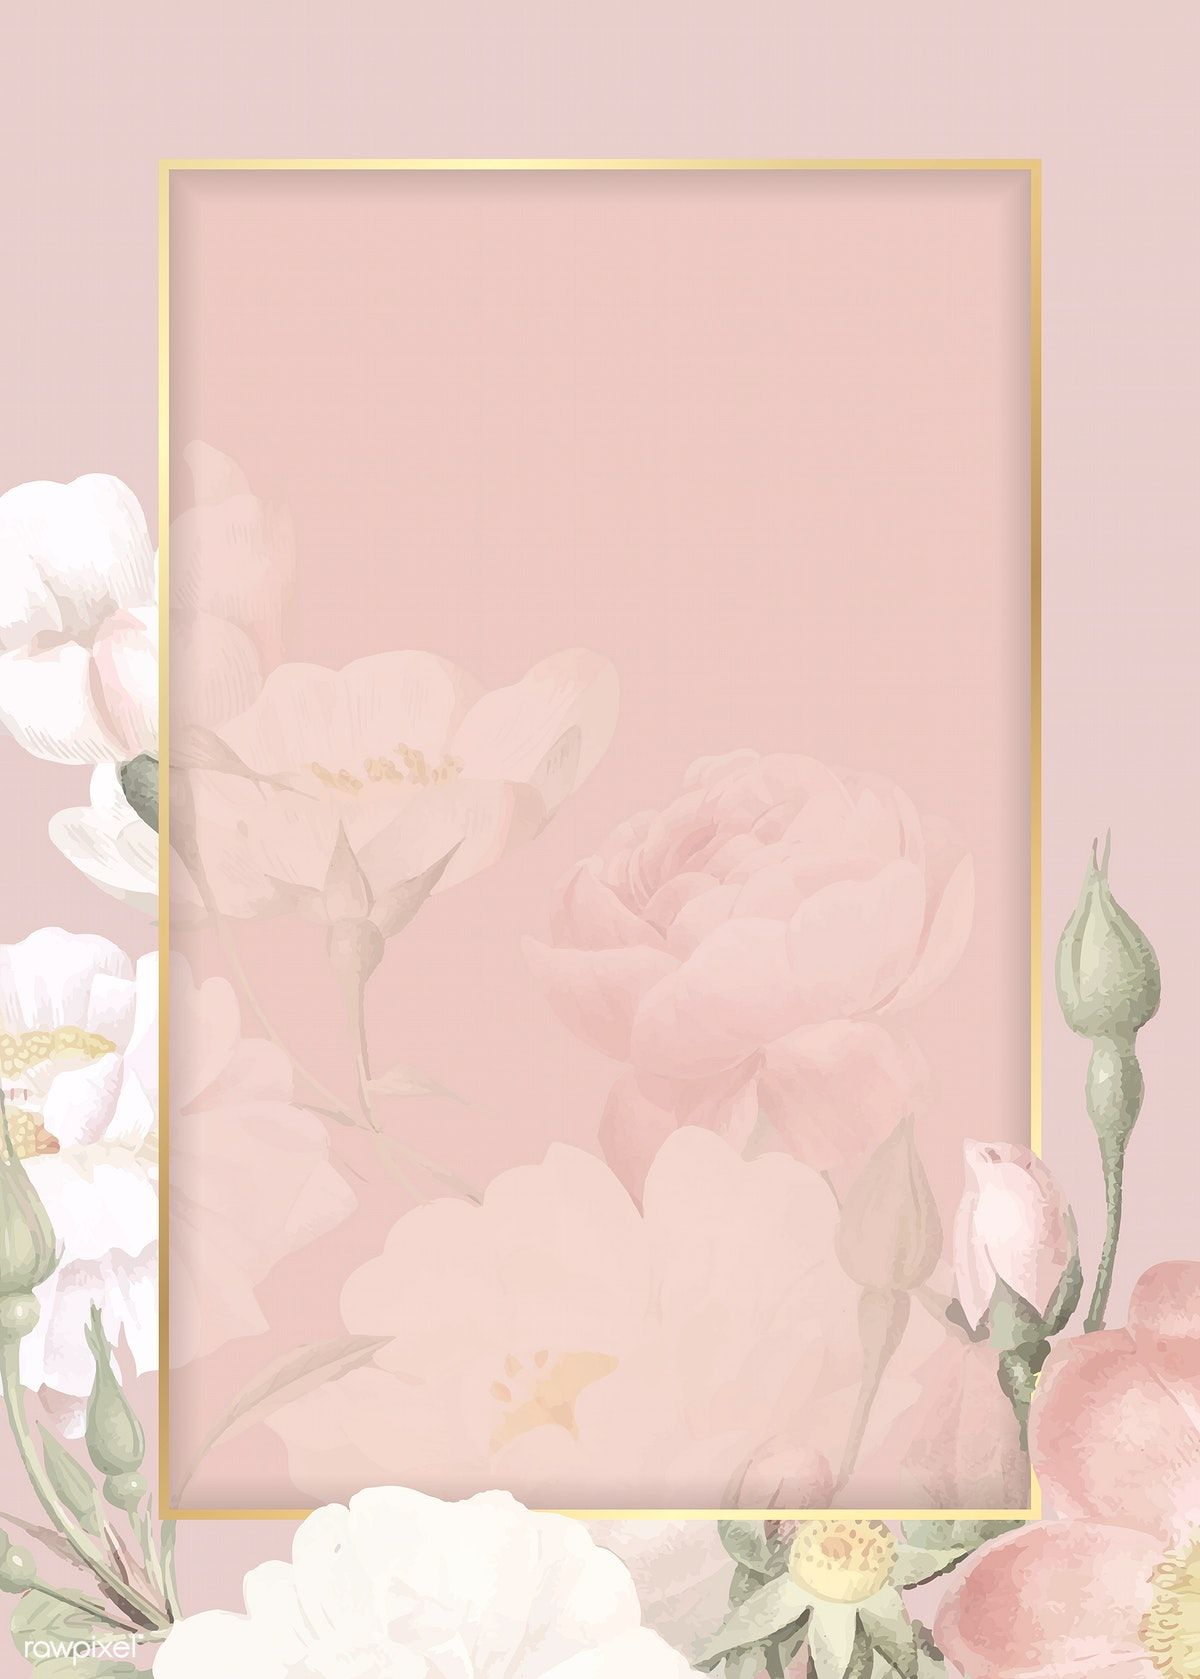 Download premium vector of Hand drawn floral rectangle